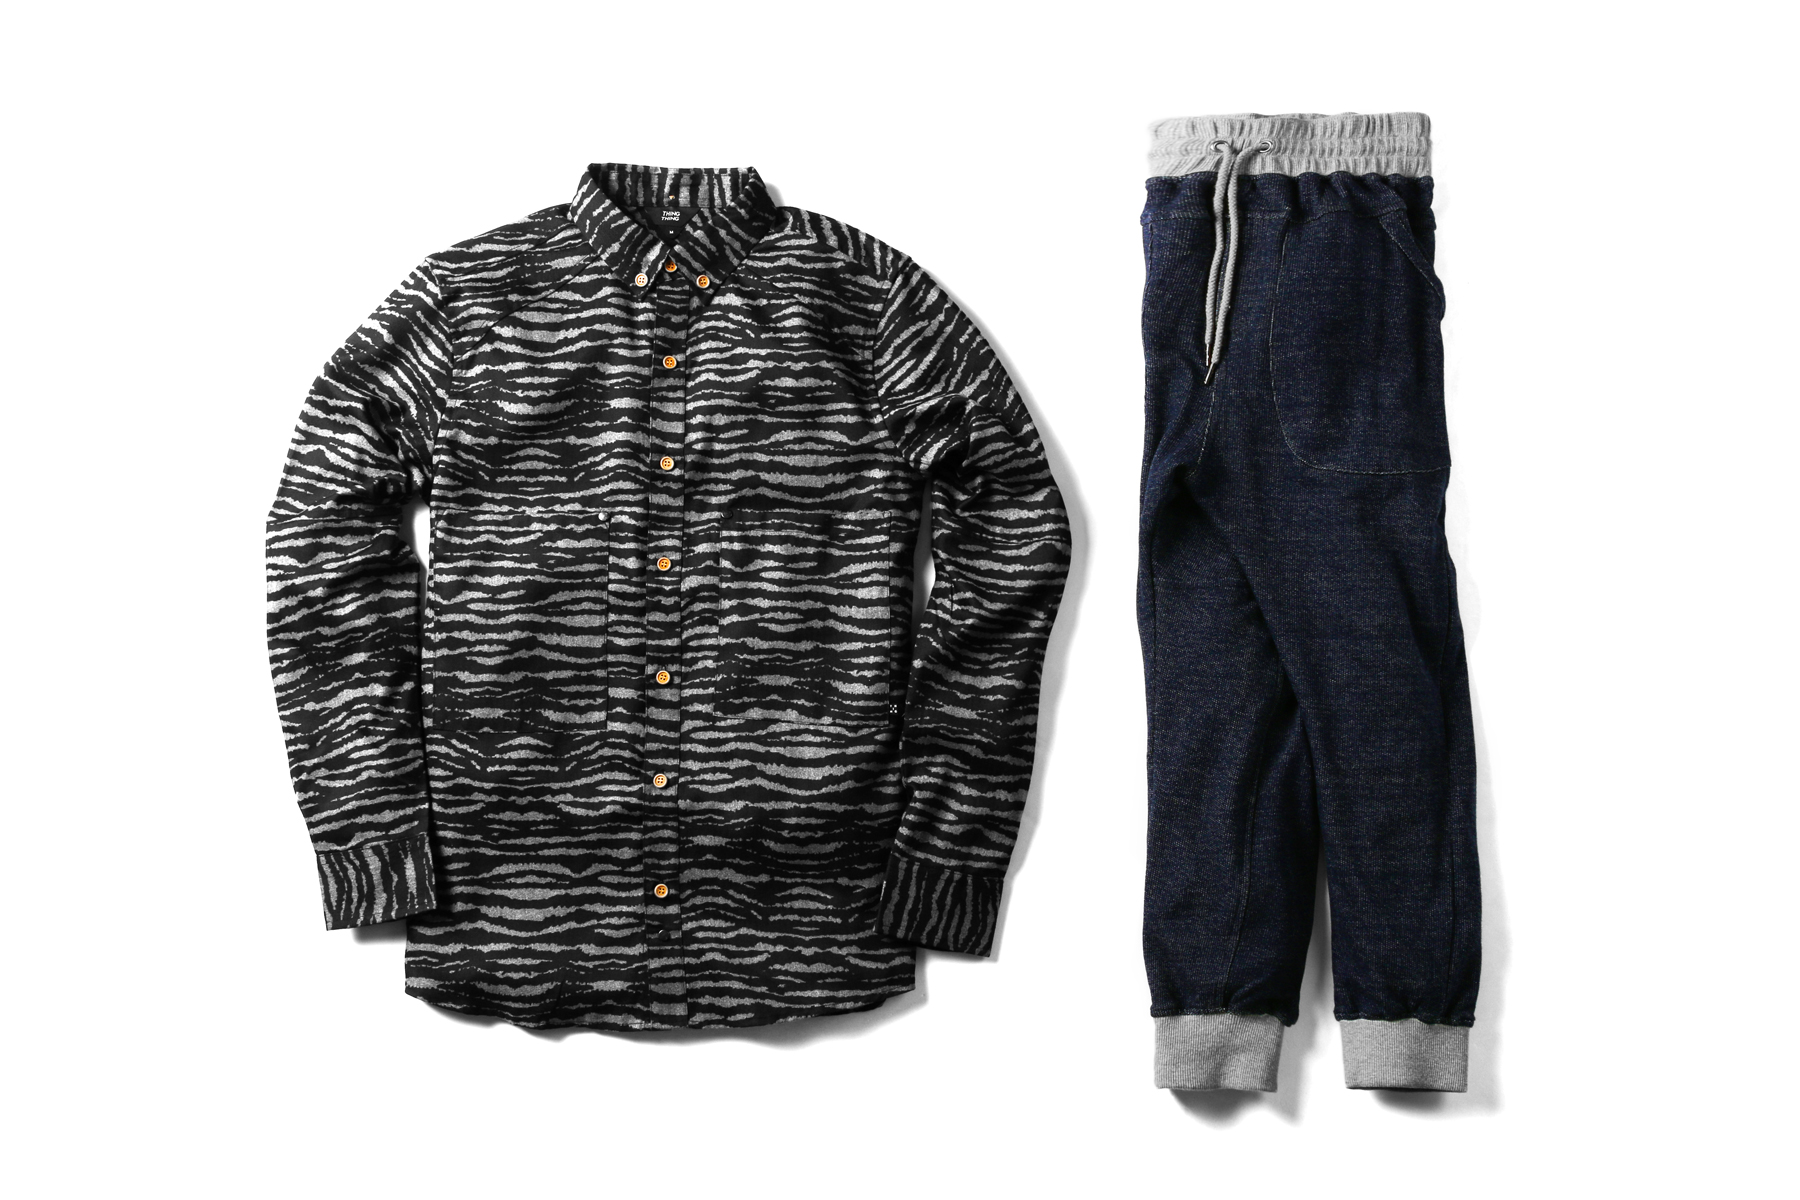 thing thing 2014 fall winter collection